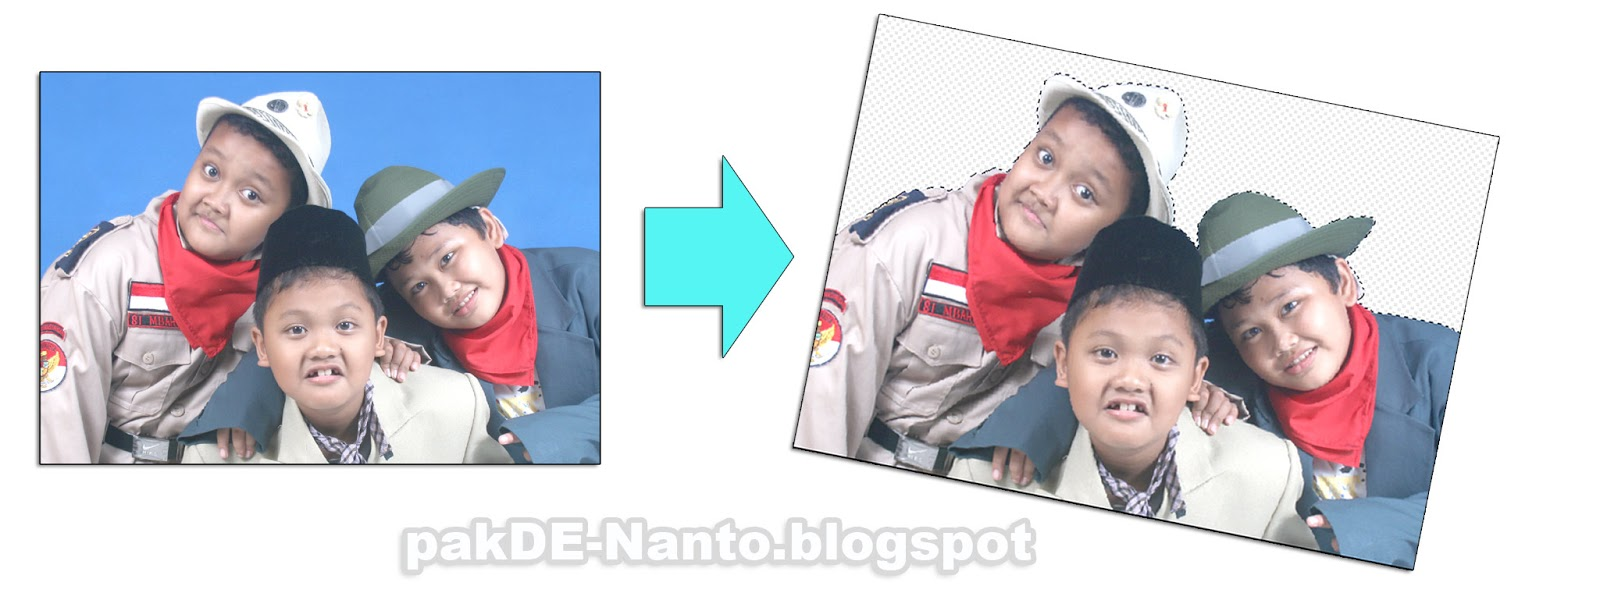 Cara menghapus background foto menjadi transparan di photoshop